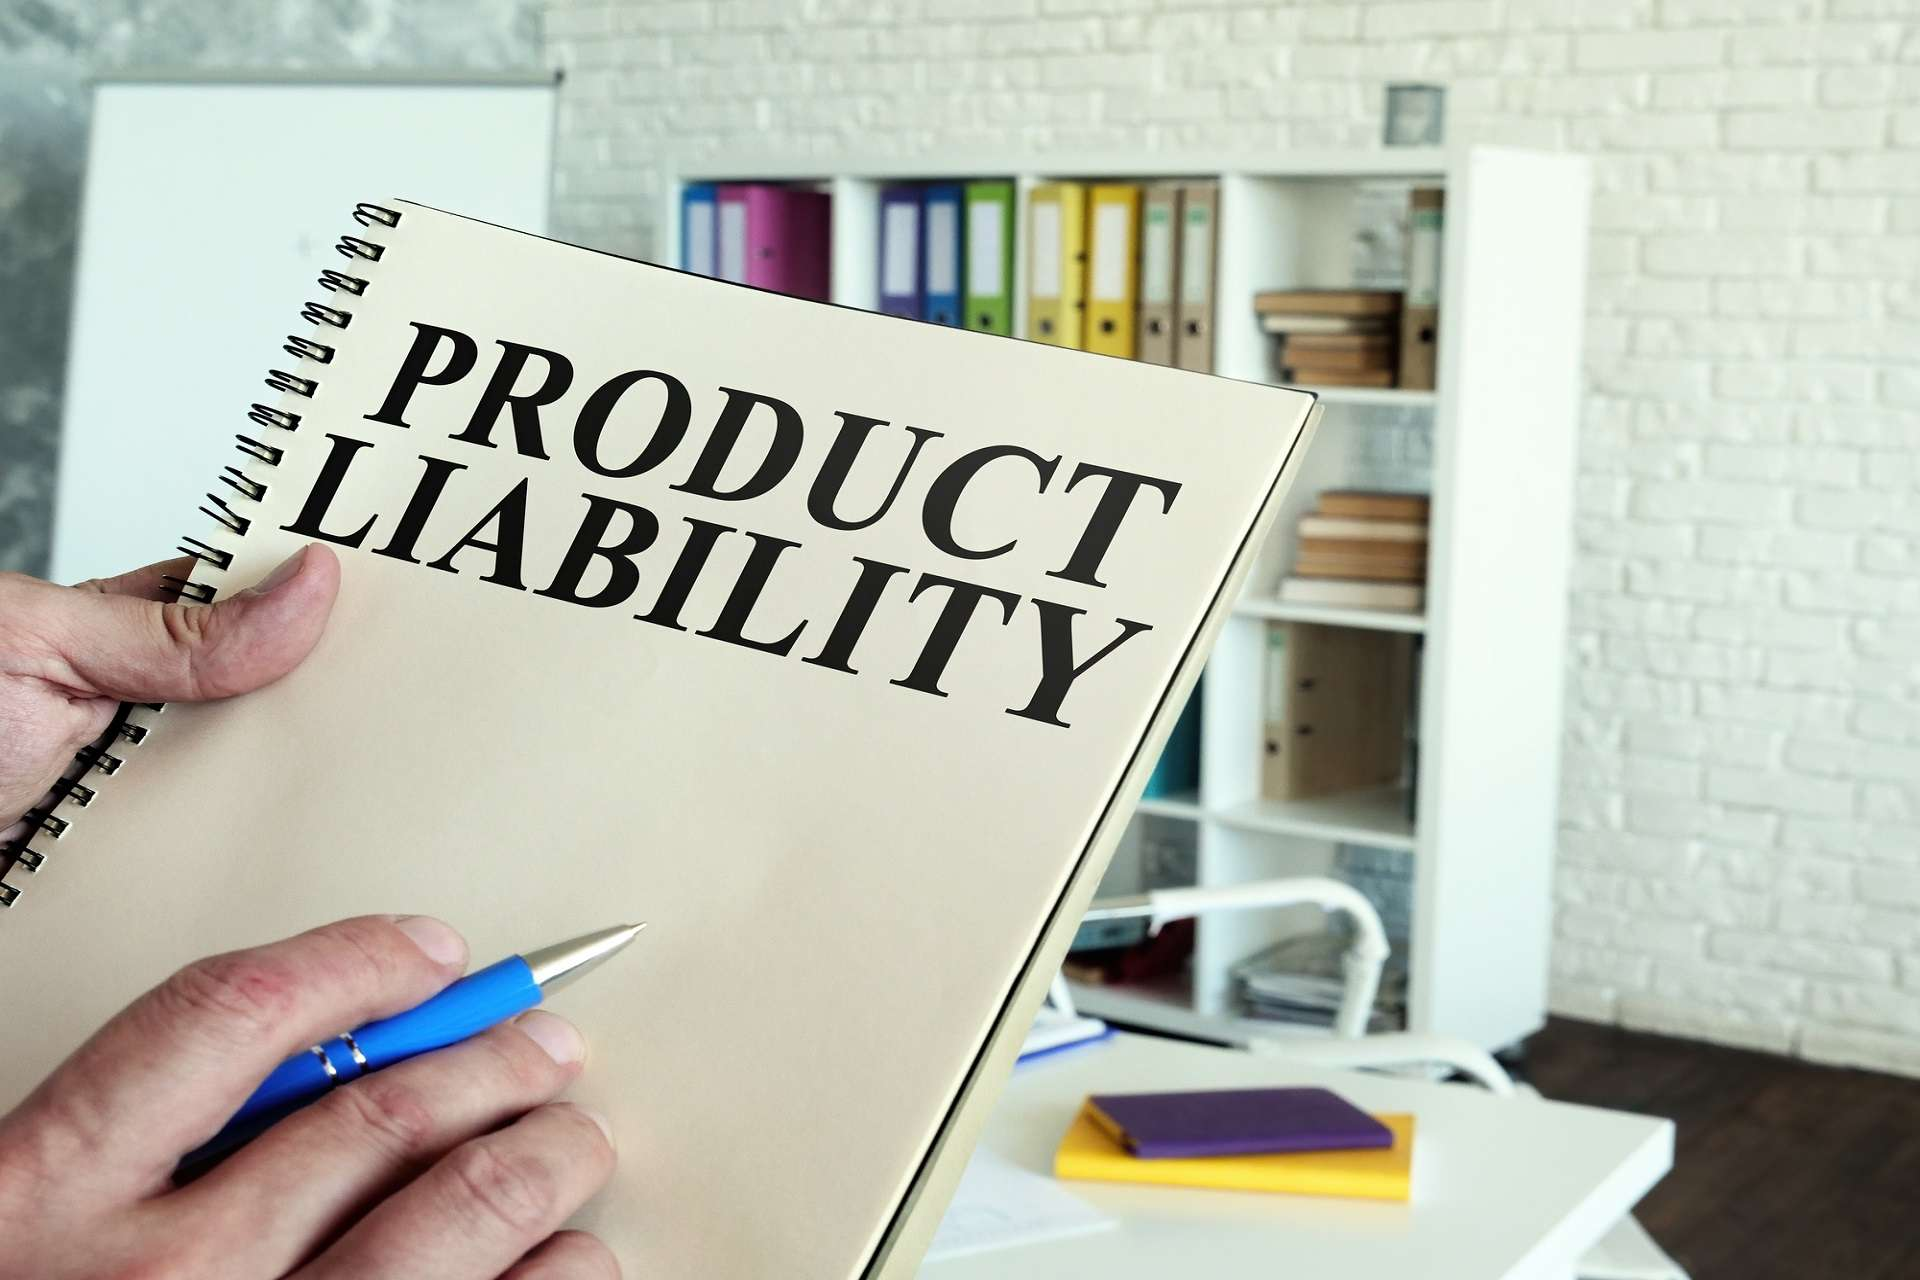 Product liability vocational expert